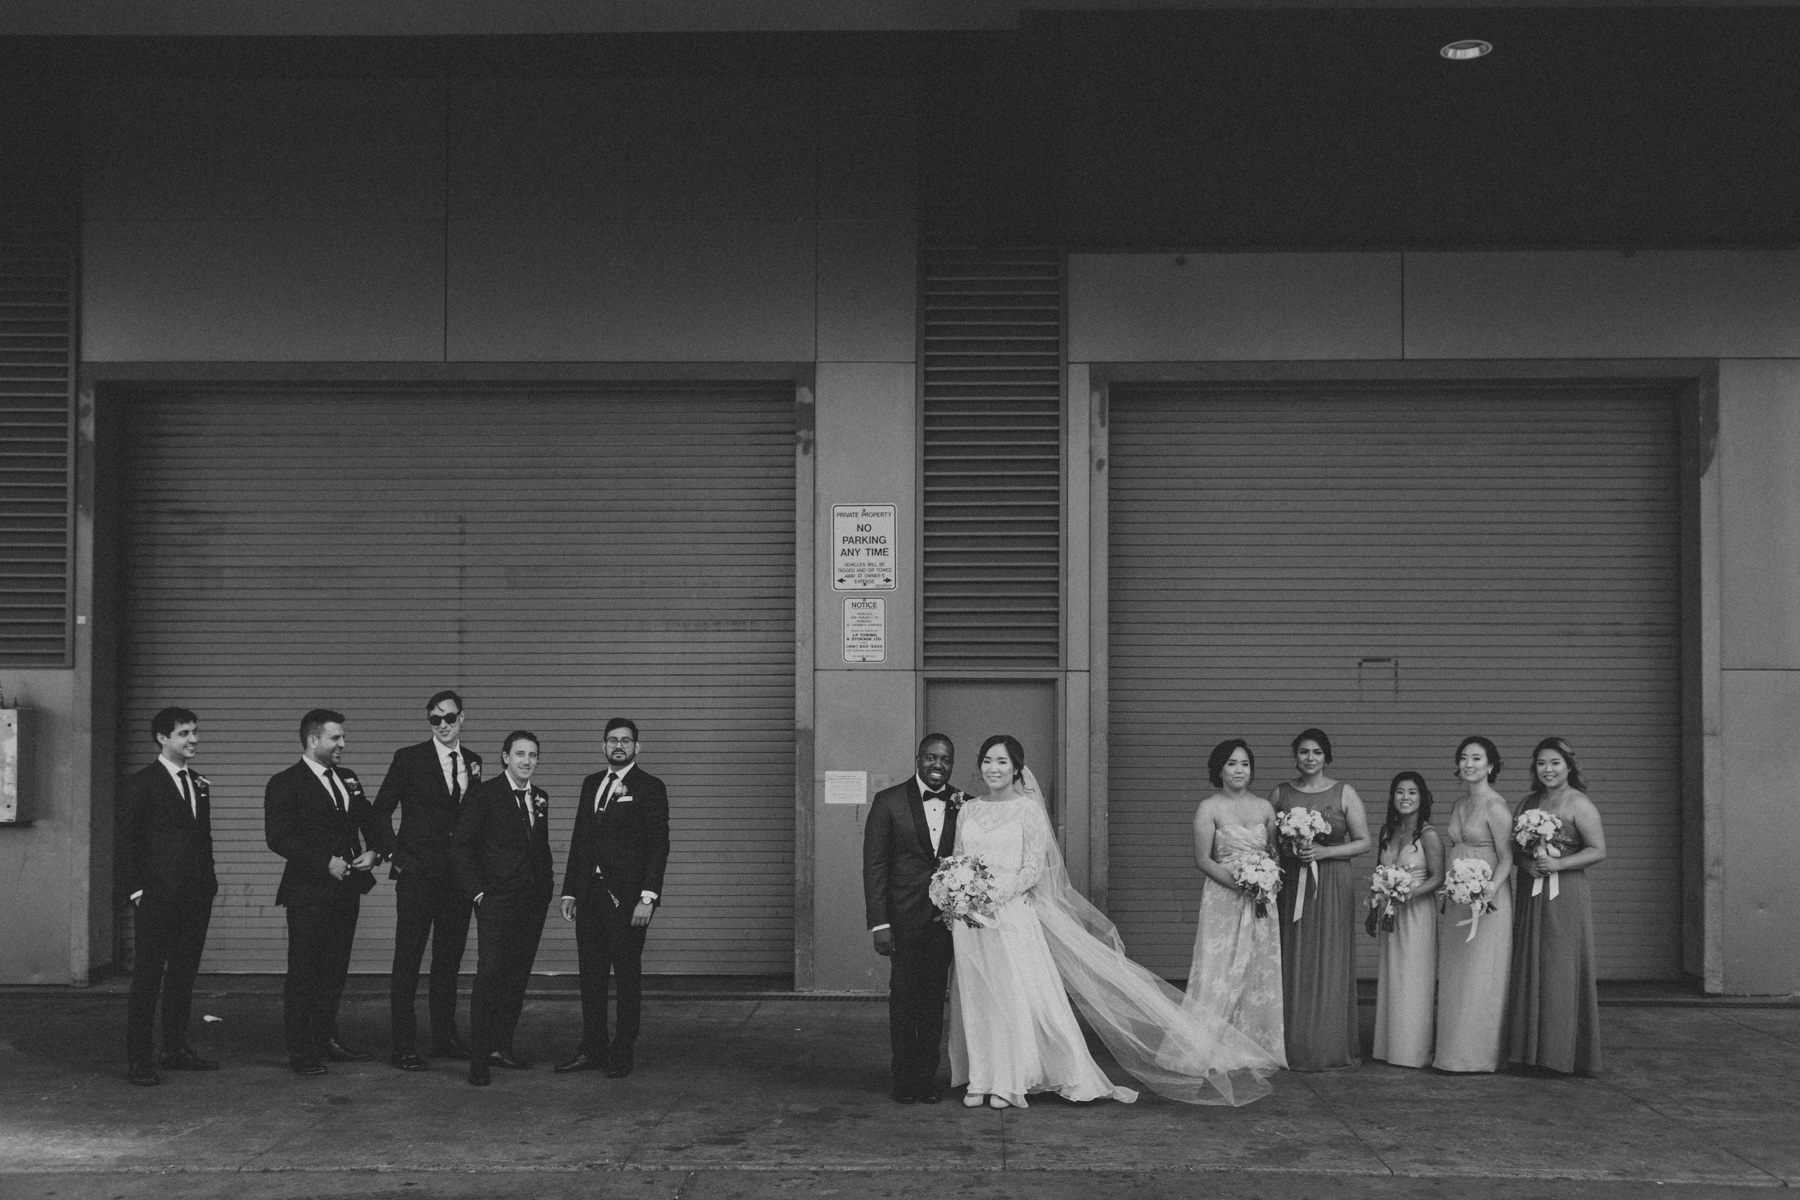 Malaparte-wedding-photography-Toronto-by-Sam-Wong-of-Artanis-Collective-Mary-Anne-Bourne_019.jpg